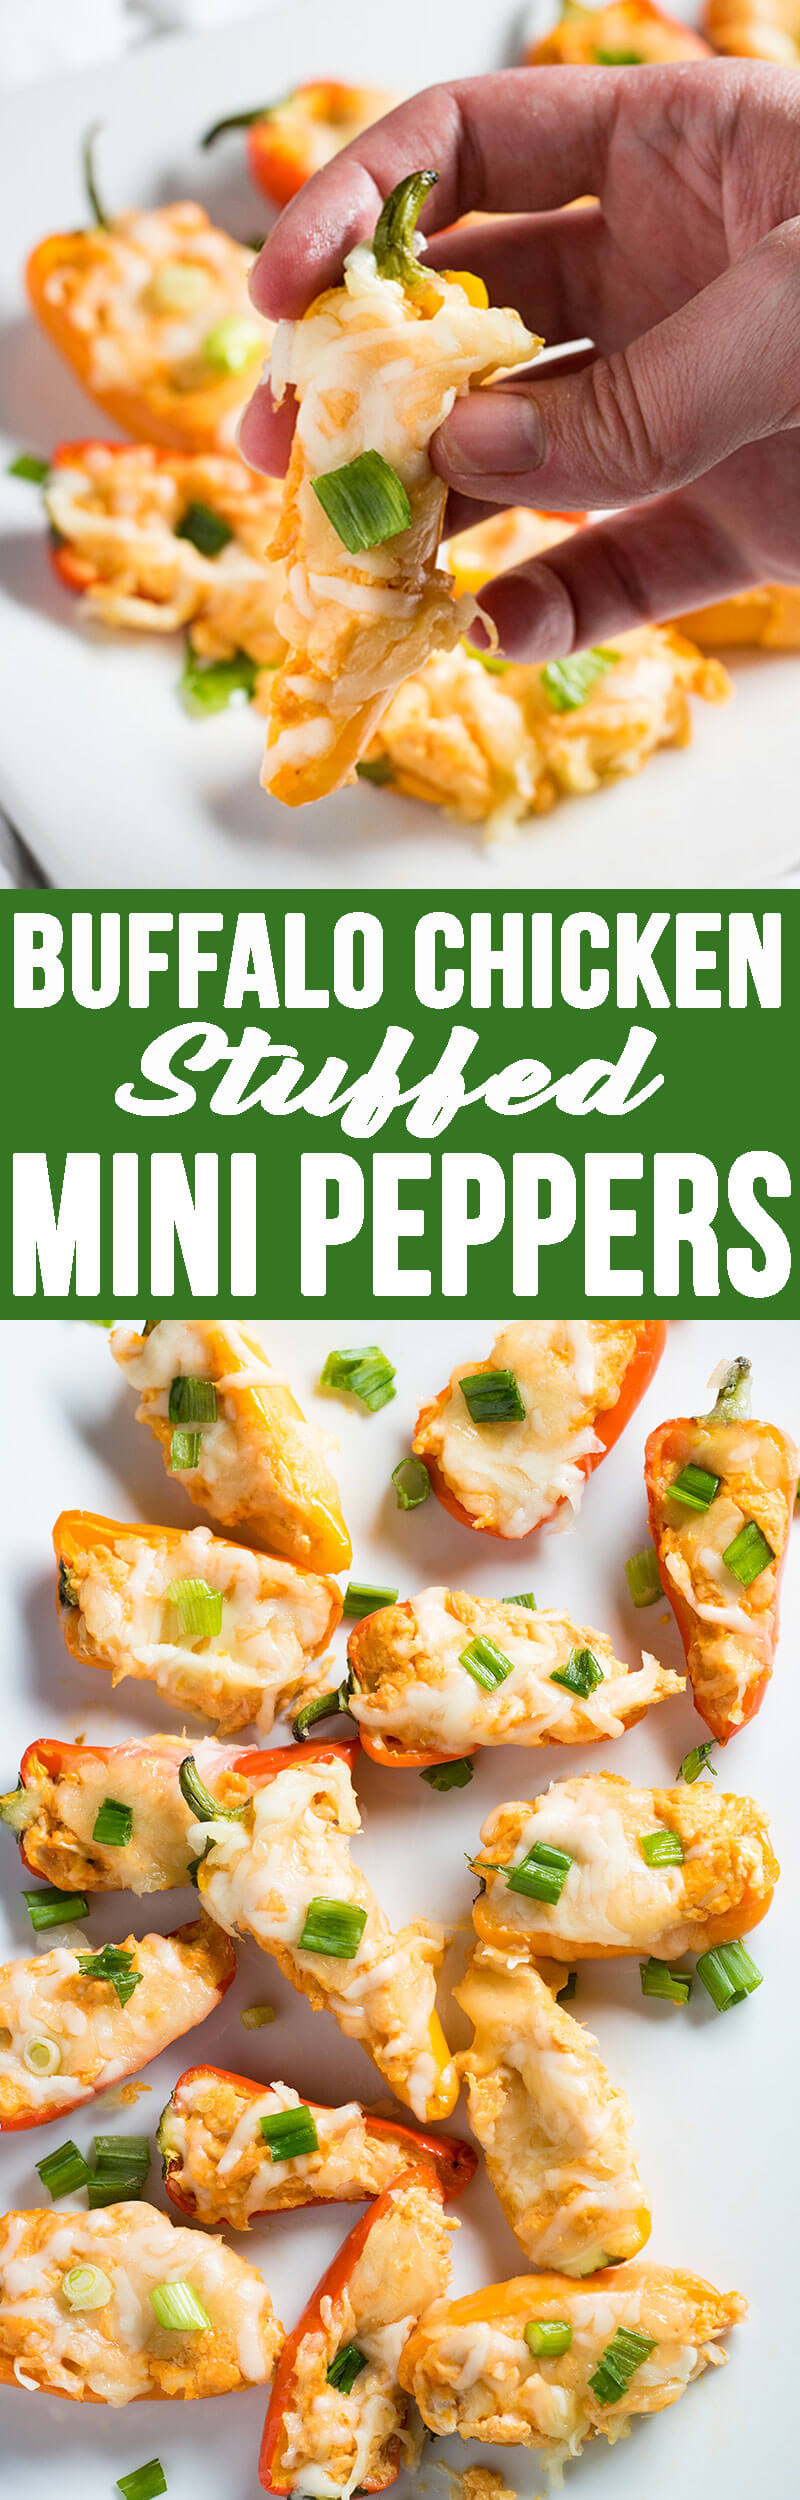 Buffalo Chicken Stuffed Mini Peppers make for an excellent appetizer, especially during football season